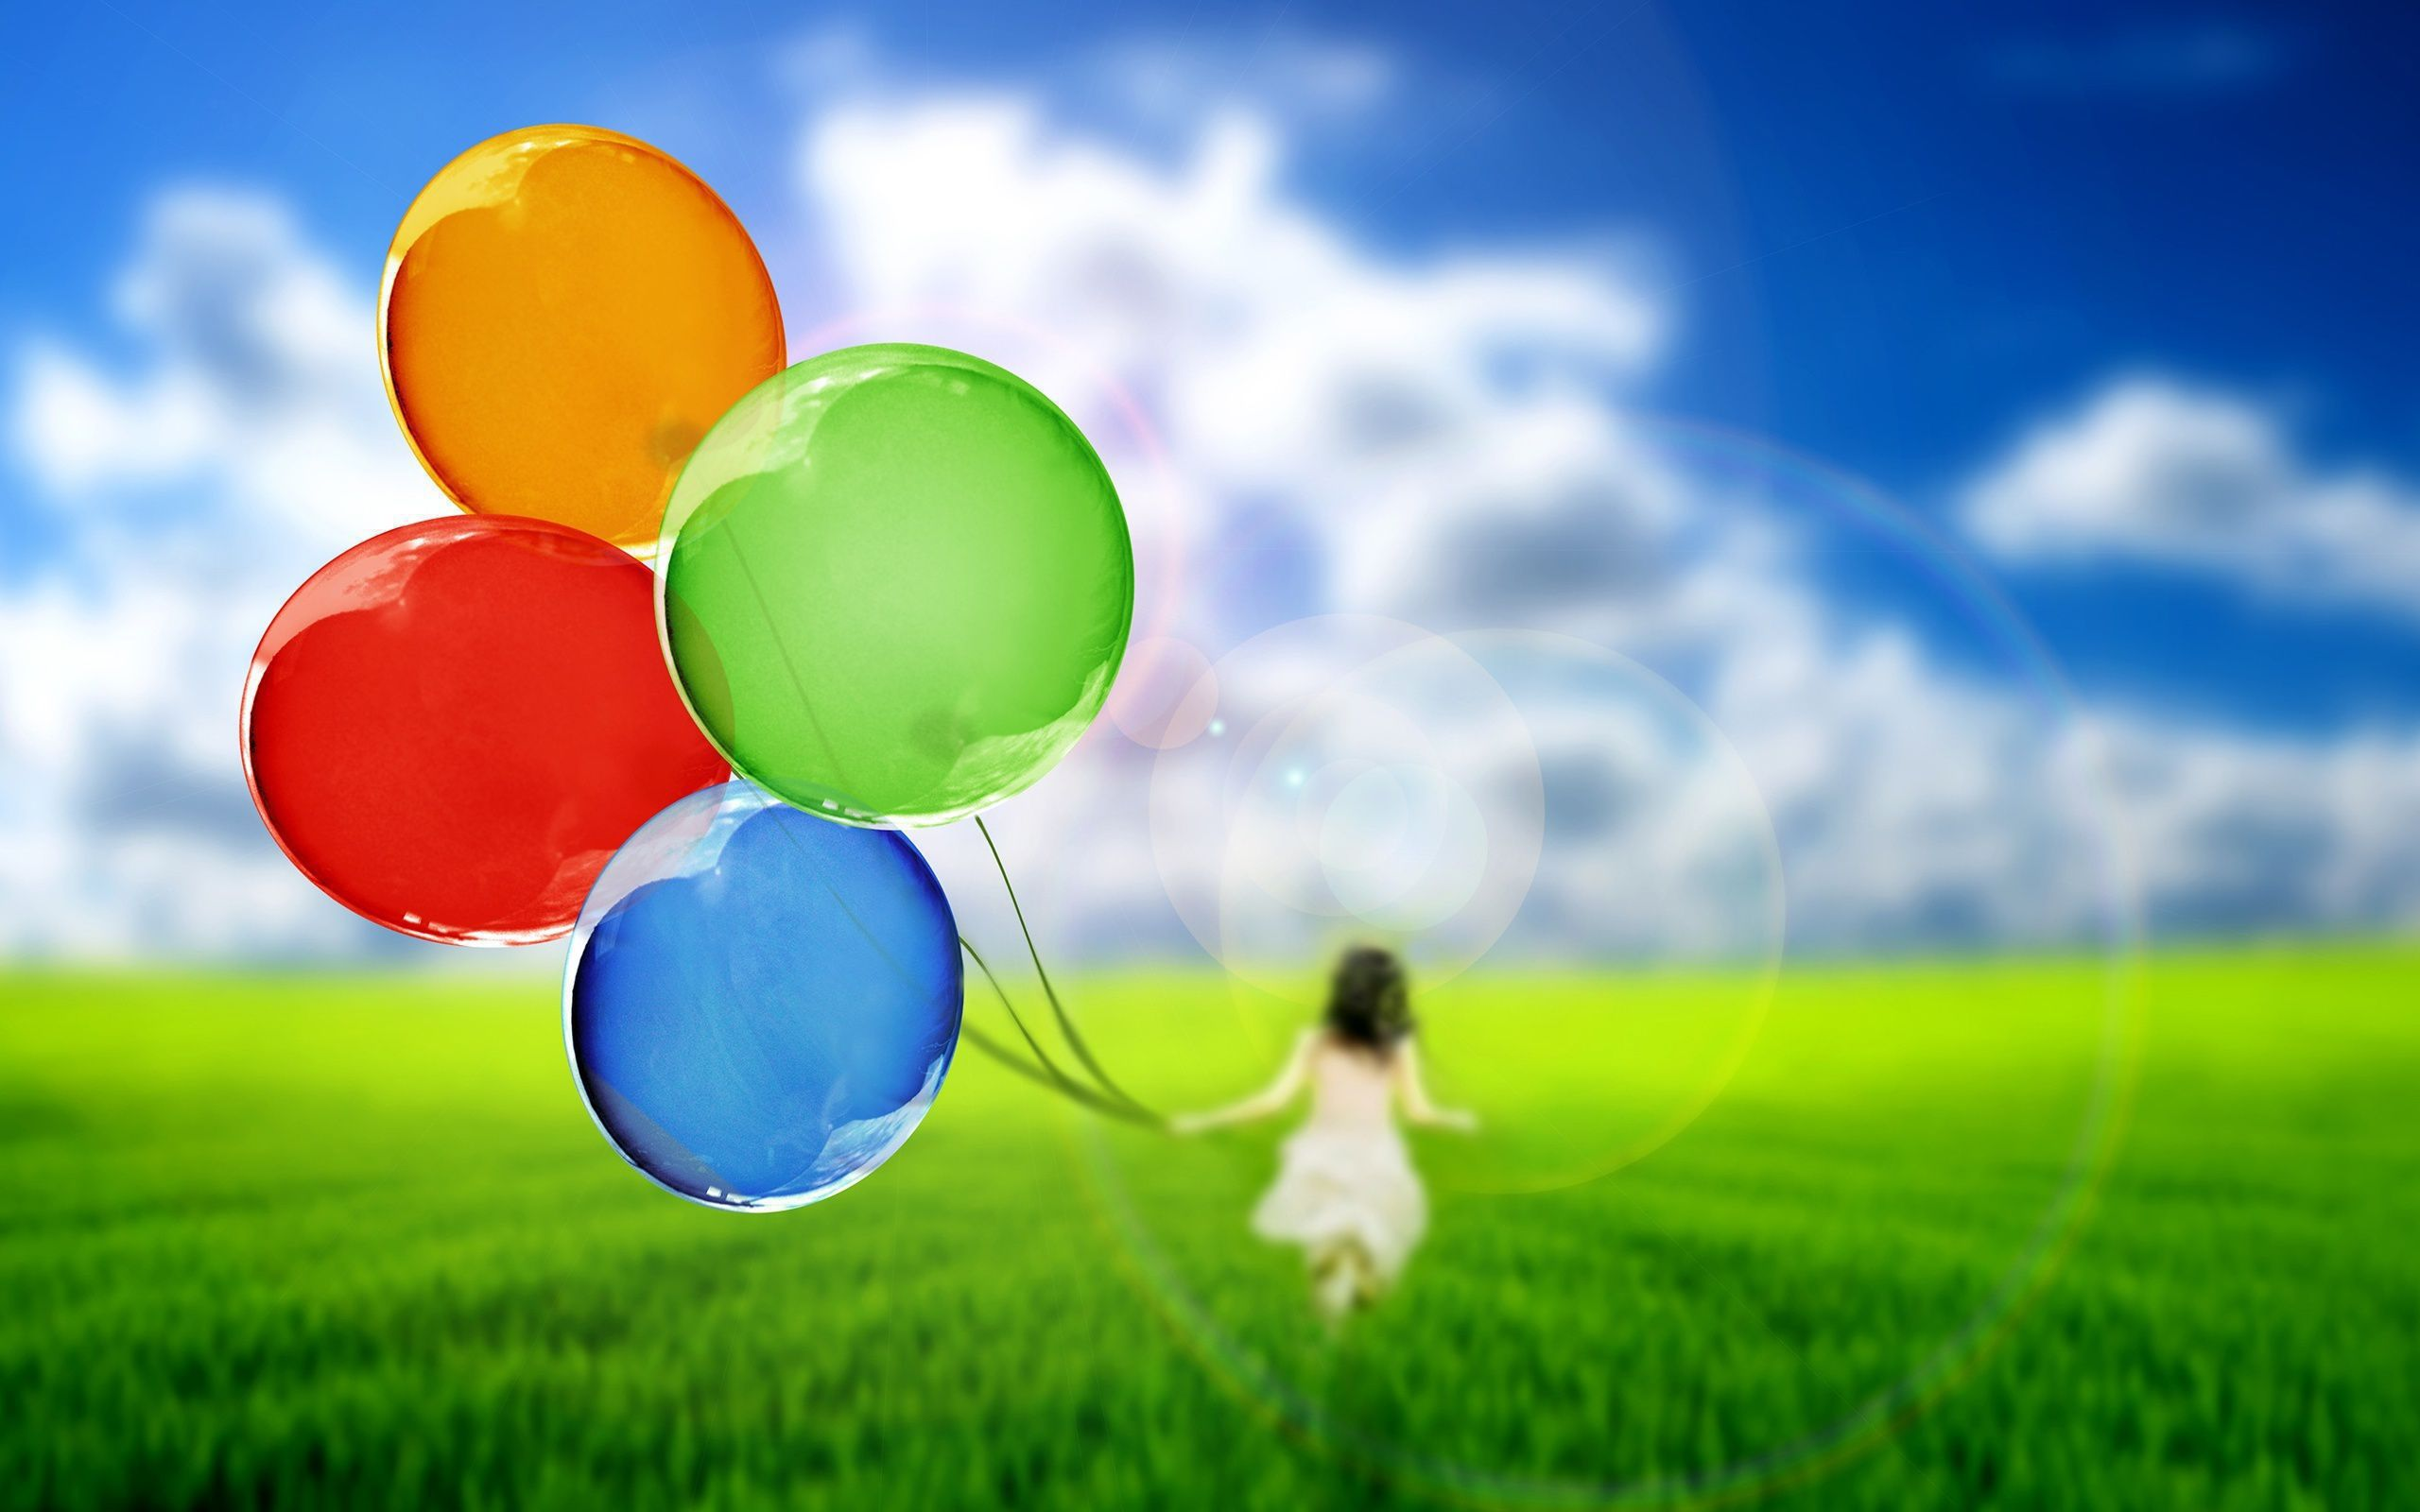 Balloons Pictures